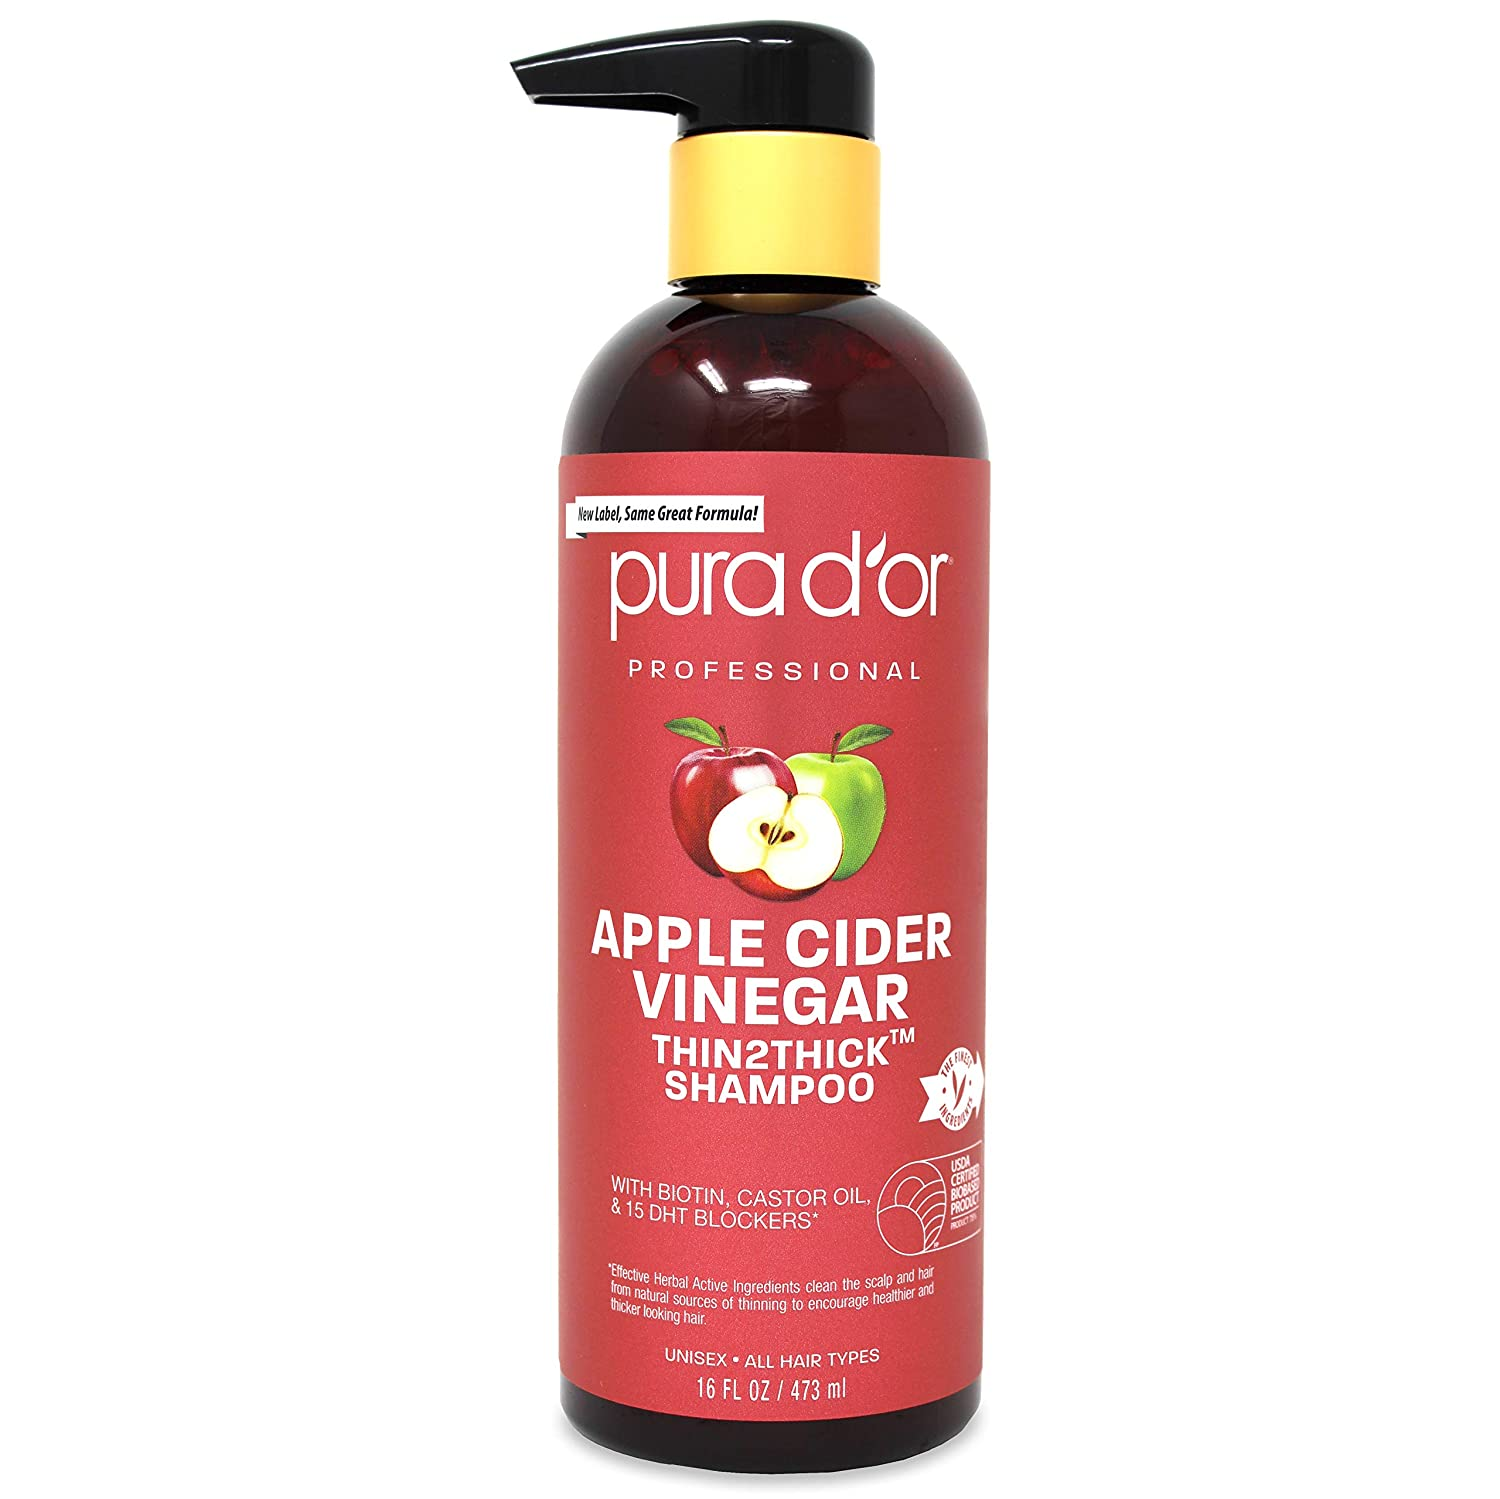 PURA D'OR Apple Cider Vinegar Thin2Thick Shampoo With Biotin, Castor Oil - For Reduced Frizz, Split Ends - Clarifying and Detox - No Parabens, No Sulfates - All Hair Types, Men & Women, 16 Fl Oz